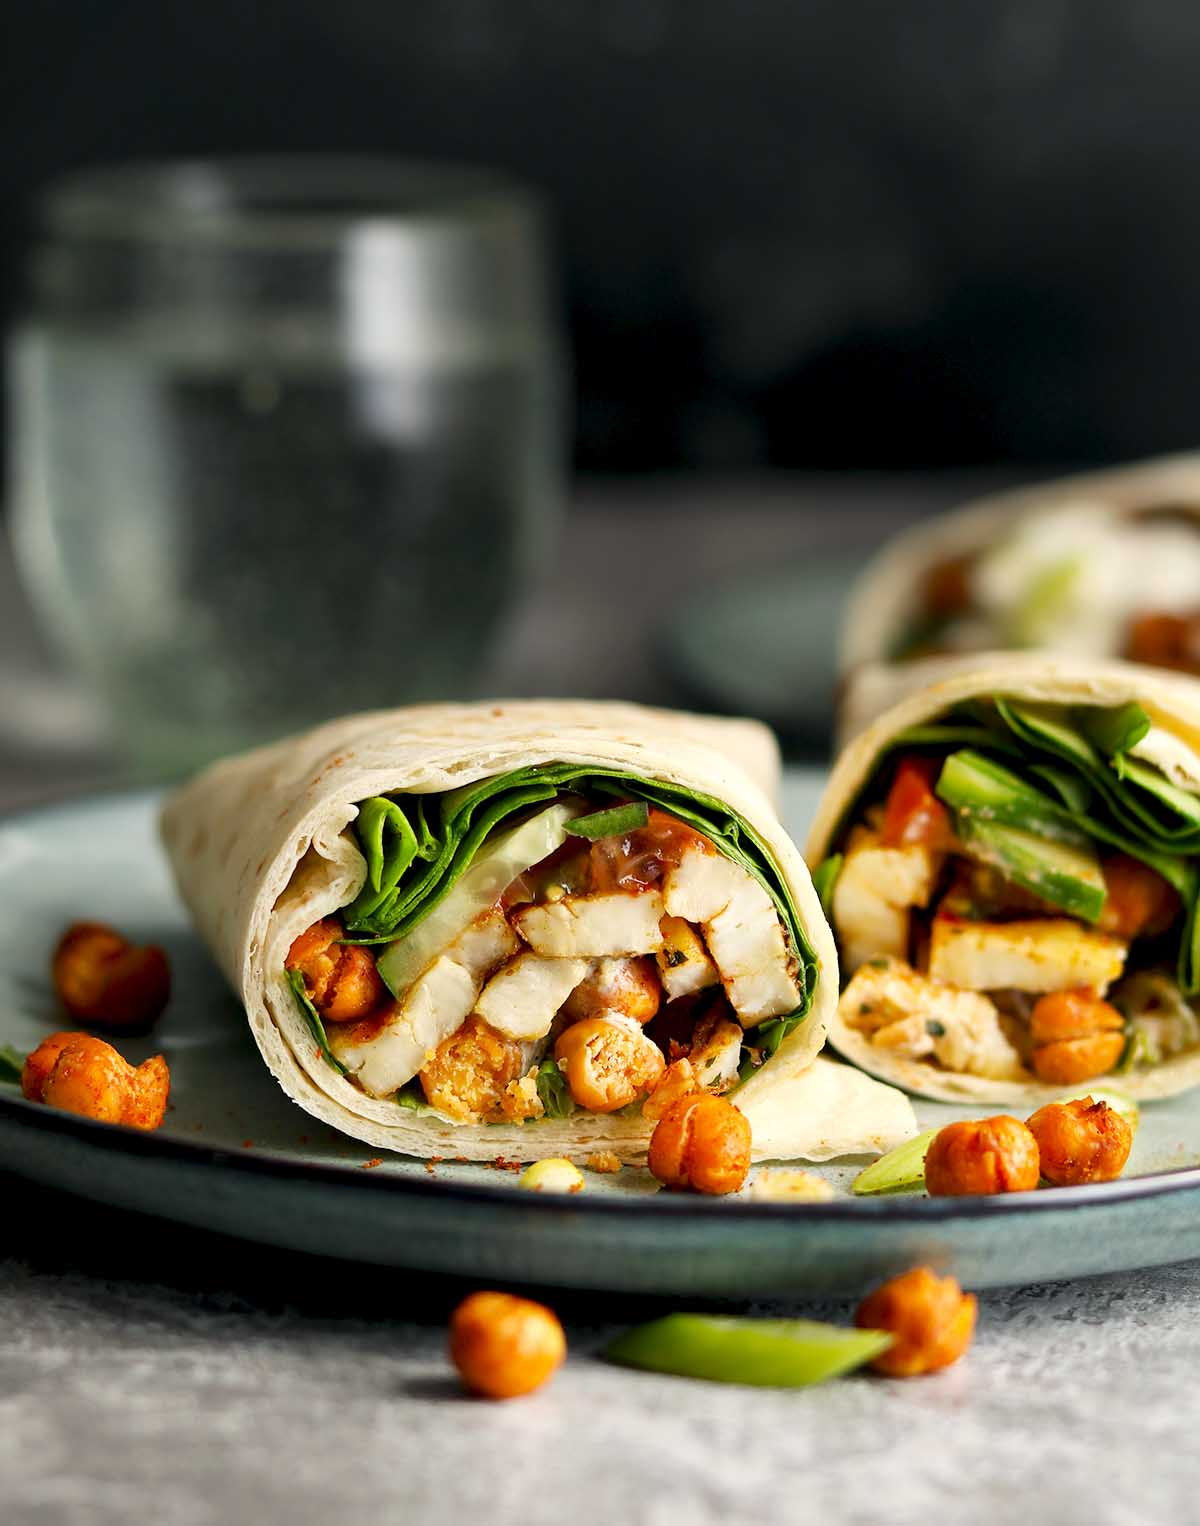 Halloumi Wraps with roasted chickpeas and a minty yoghurt sauce